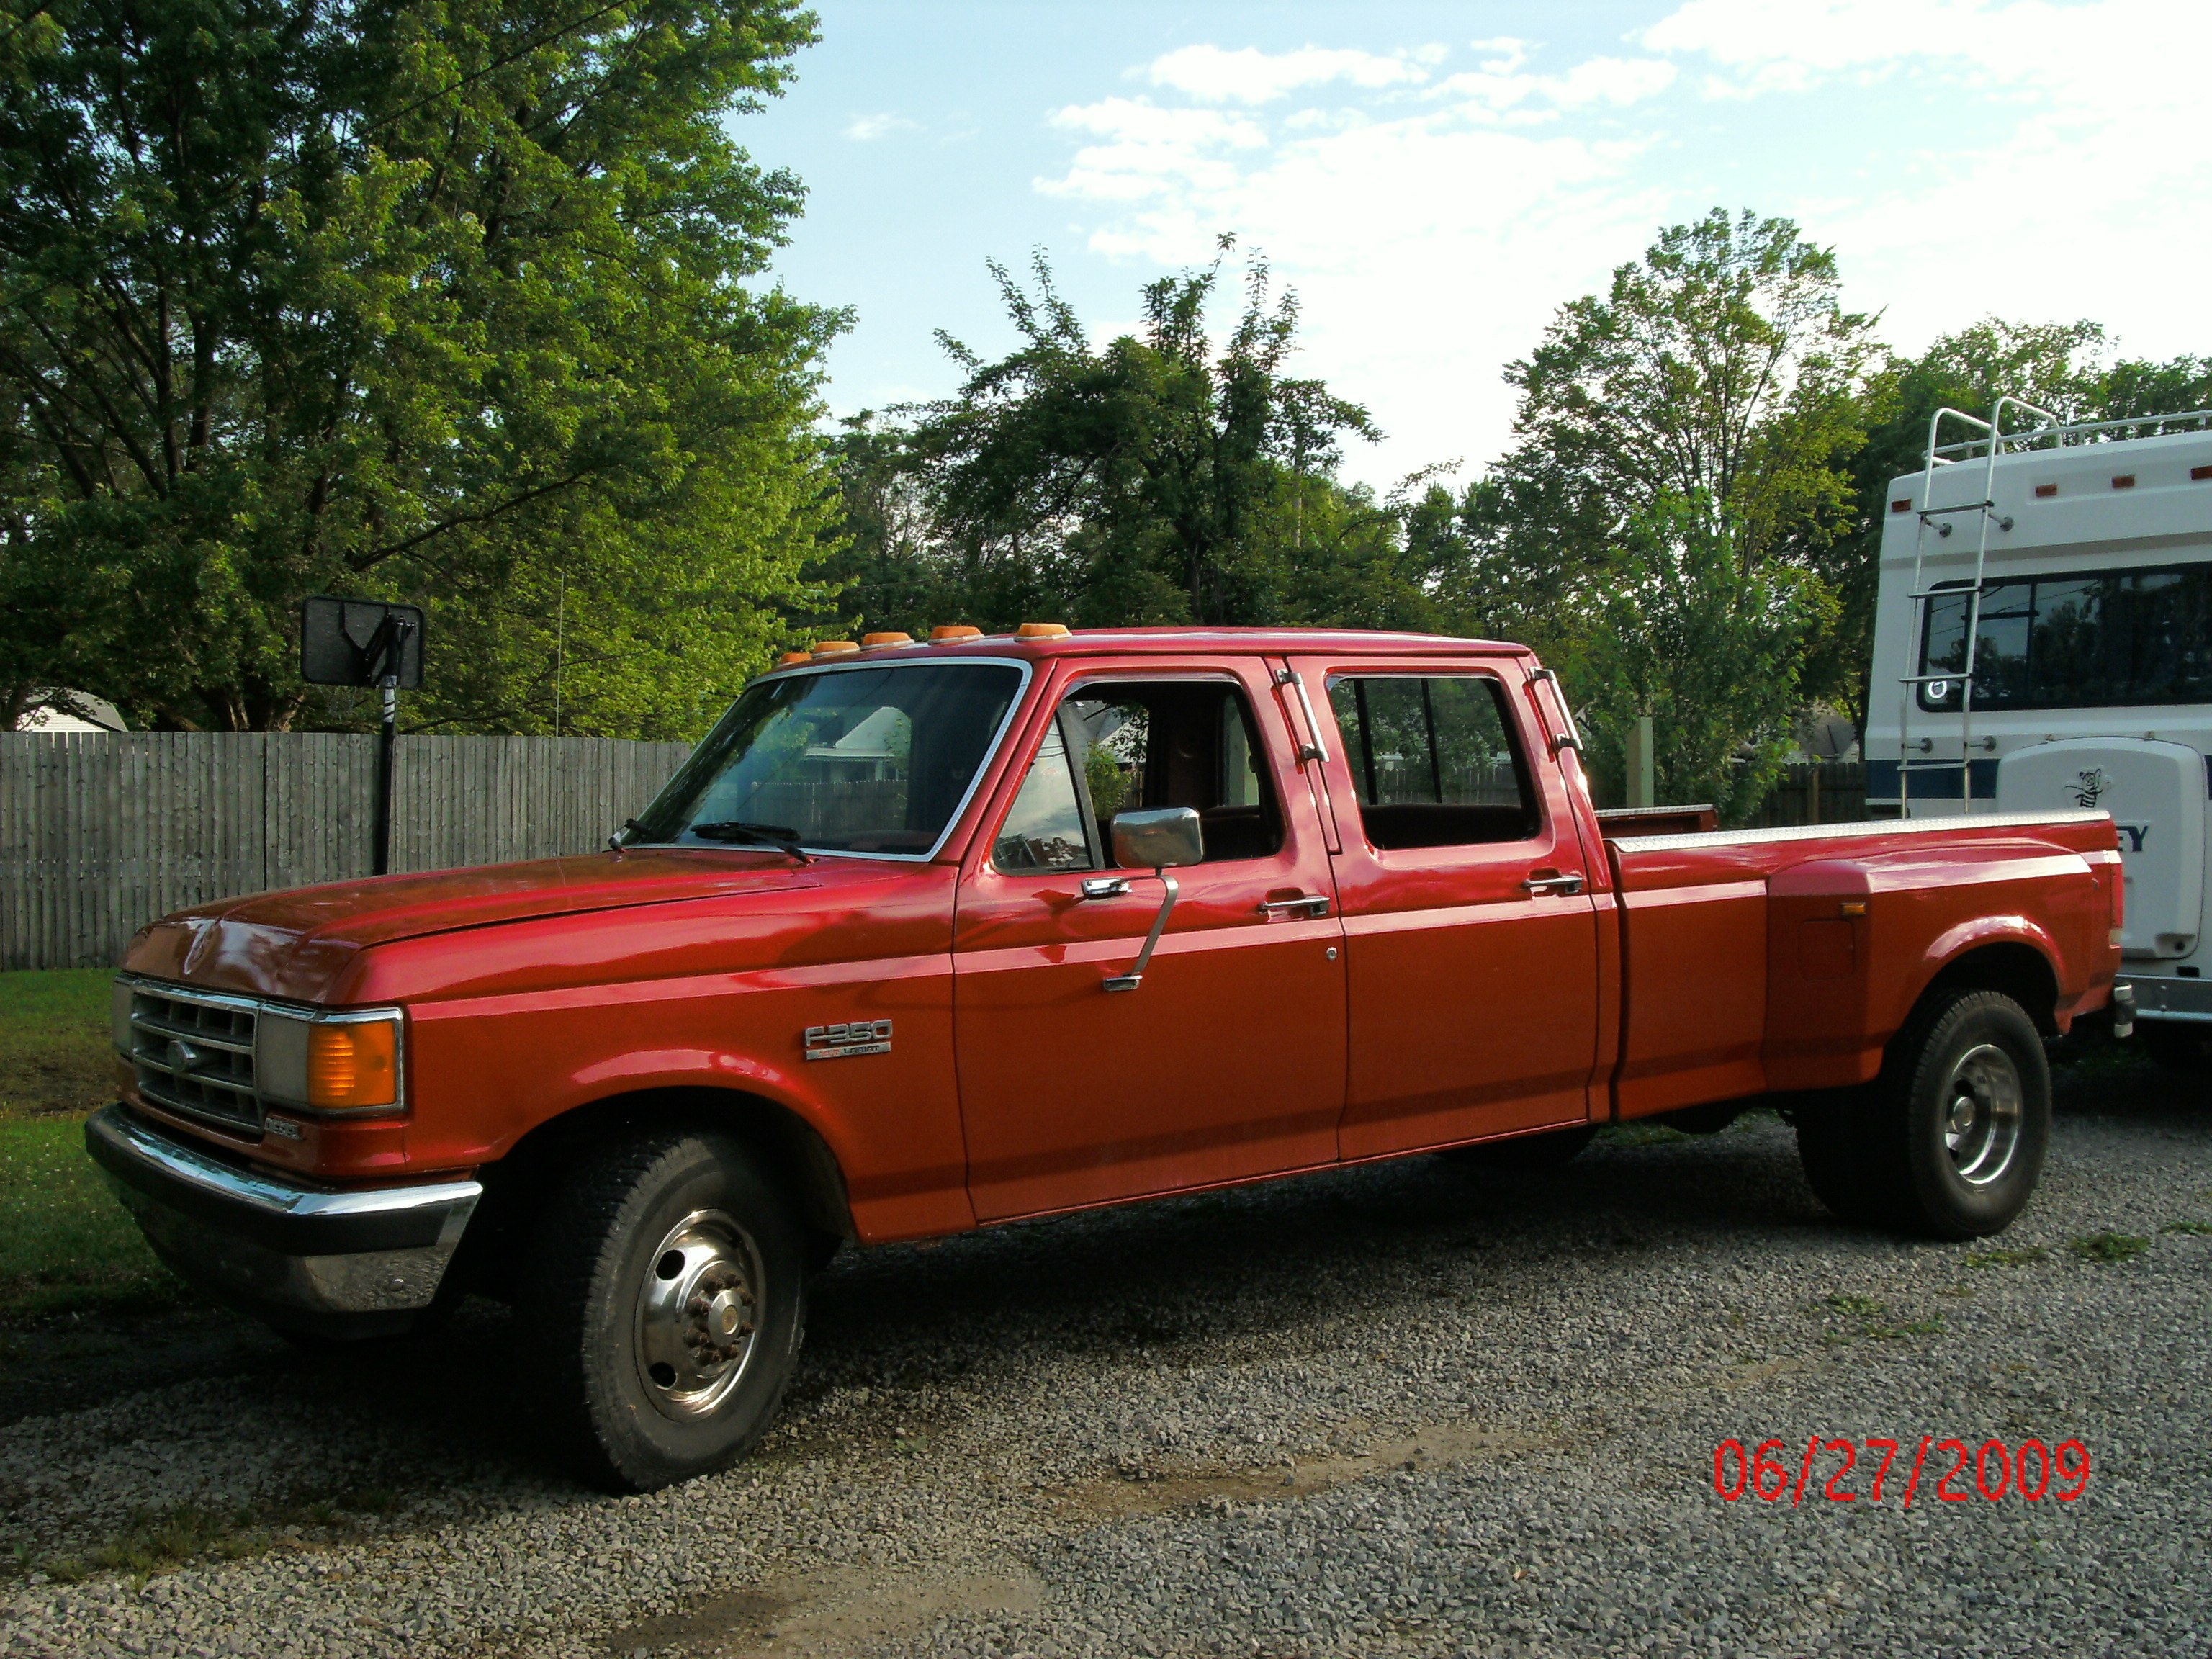 Stoney B 1988 Ford F350 Super Duty Crew Cab & Chassis